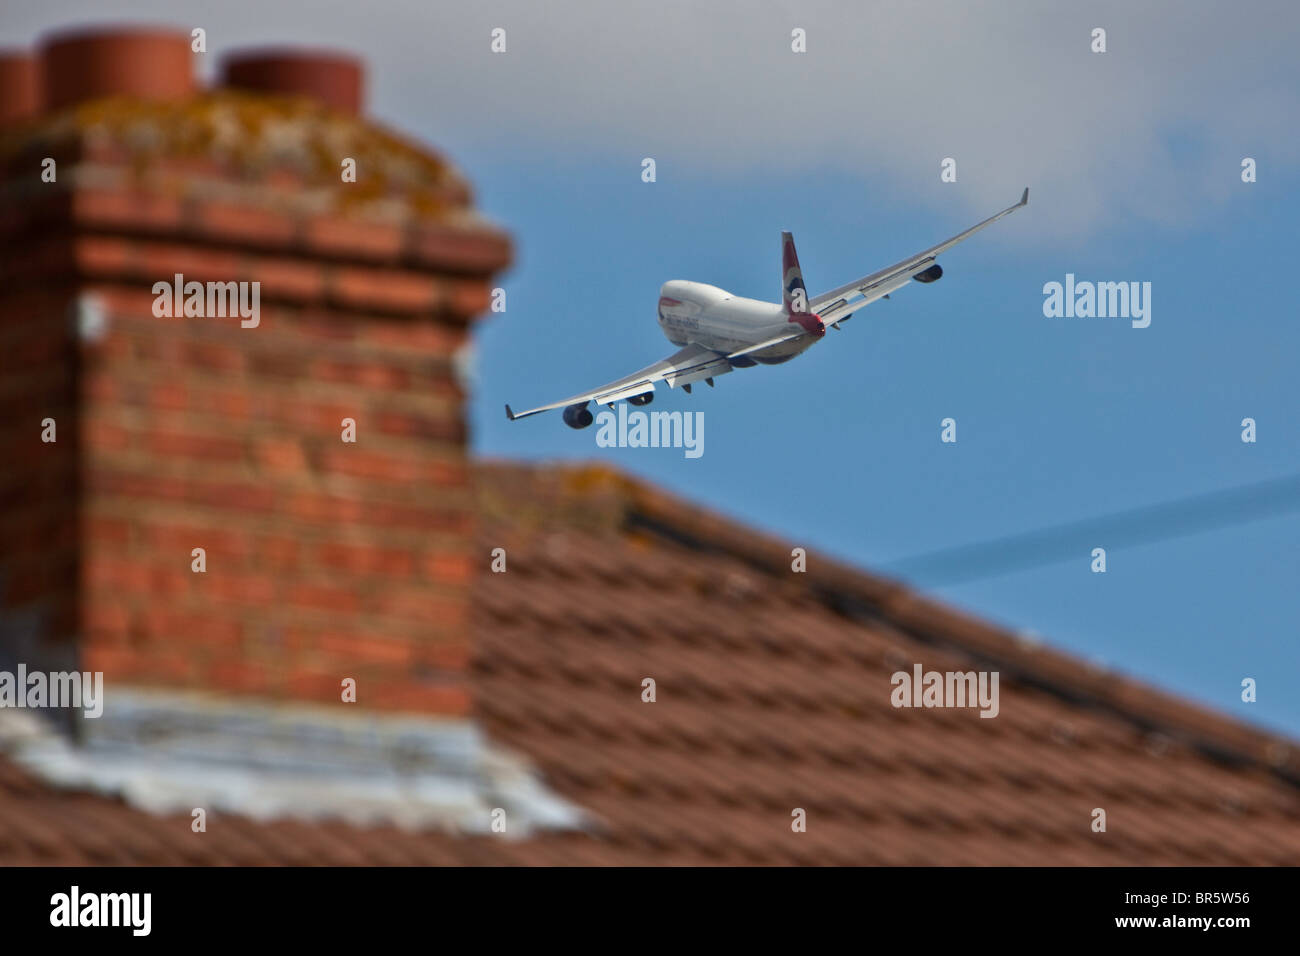 Un avion décollant de l'aéroport d'Heathrow à Londres, et survolant la zone de Stanwell Hounslow Photo Stock